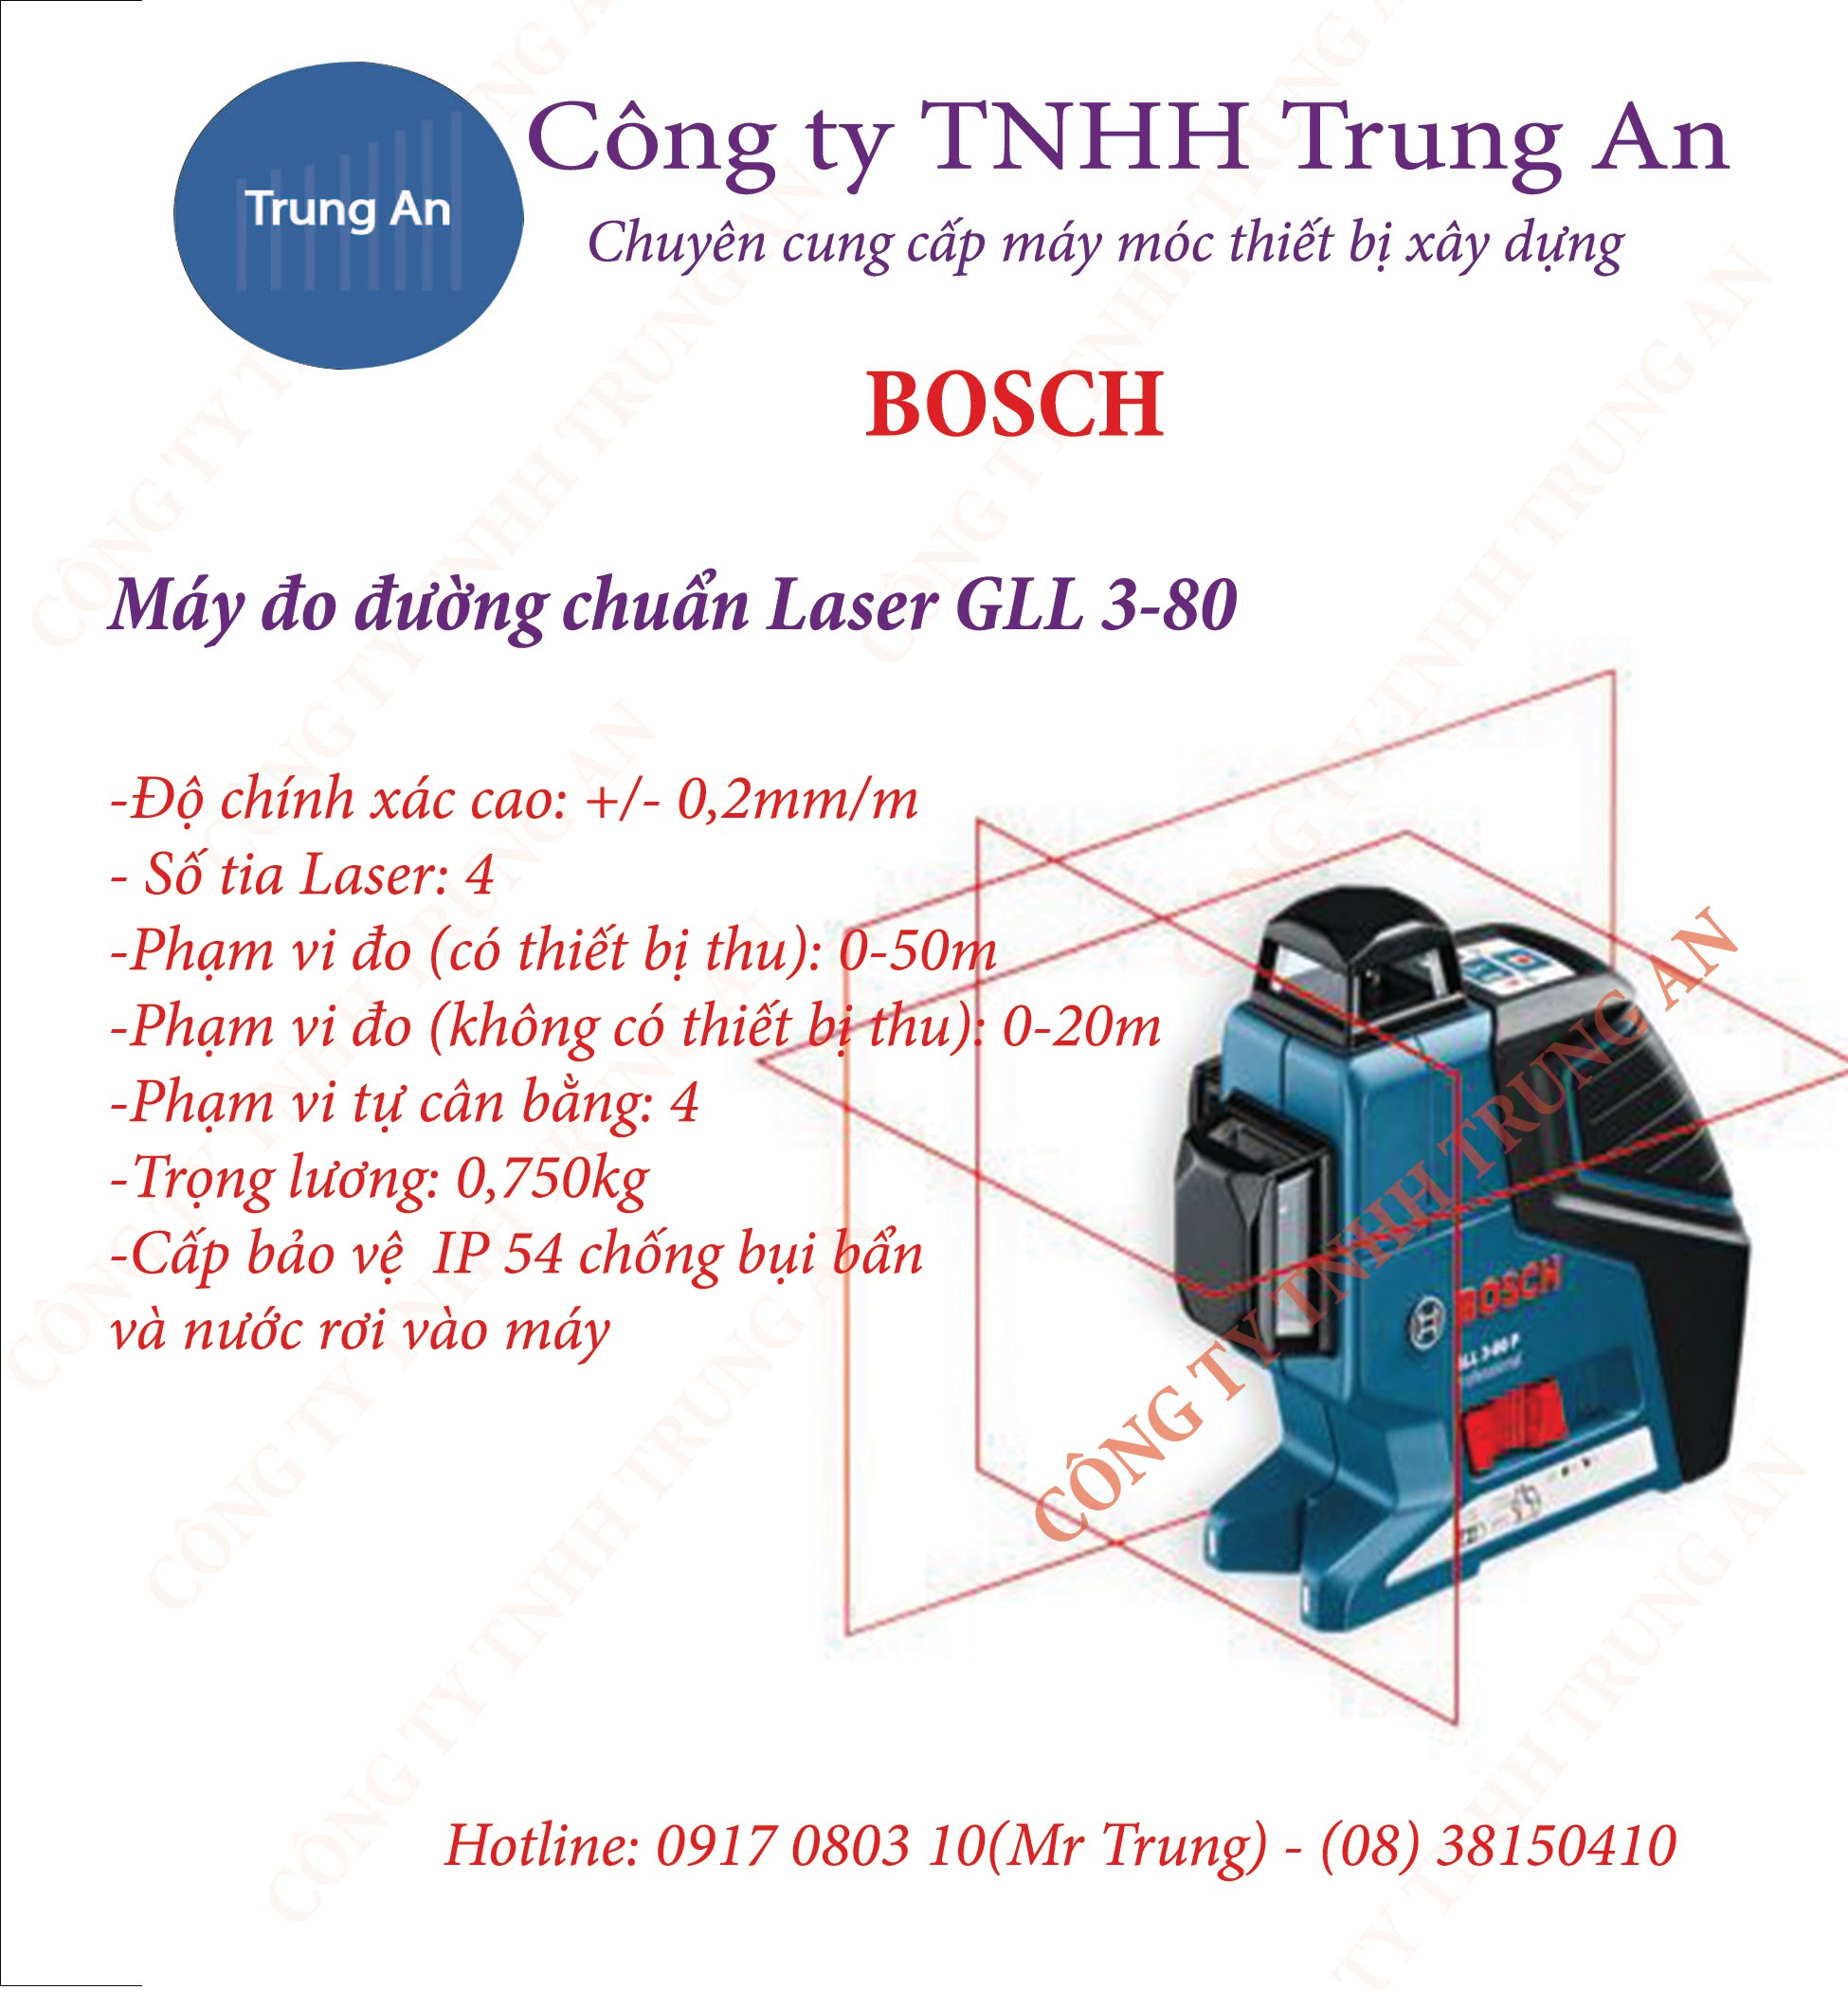 https://sites.google.com/site/maycanmuclasera/home/may-can-muc-laser-bosch-gll-3-80